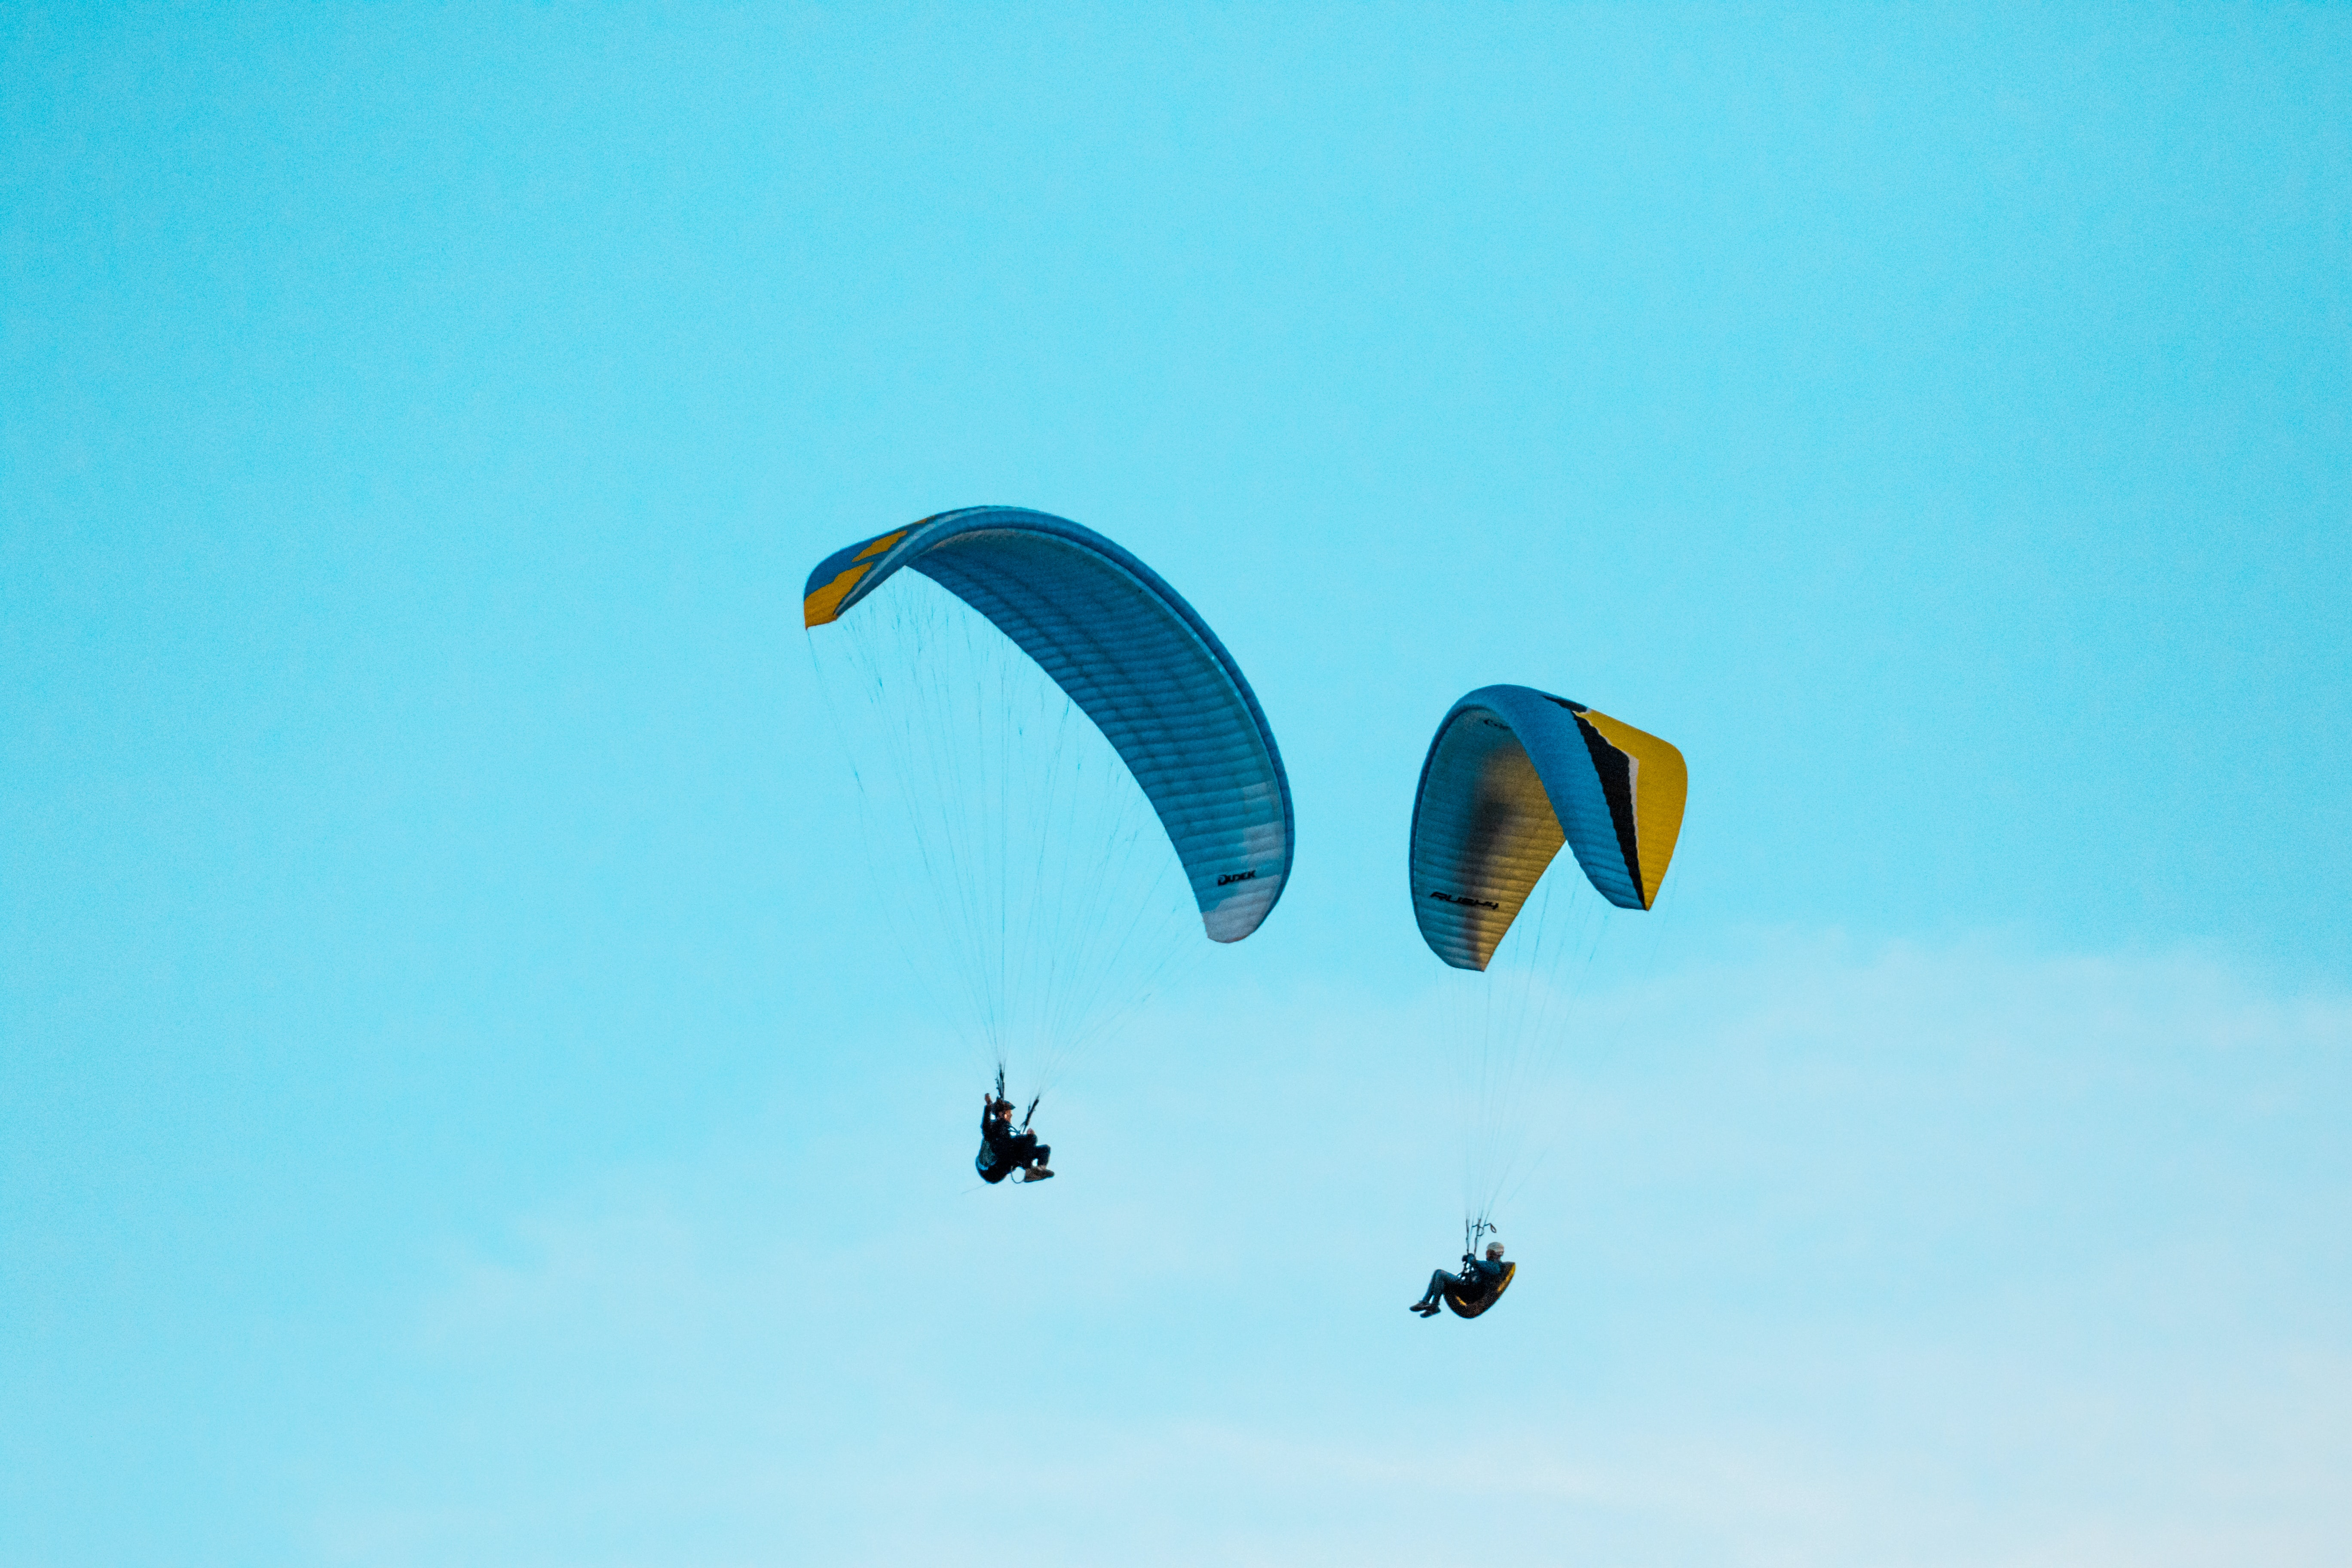 two person parachuting during clear blue sky